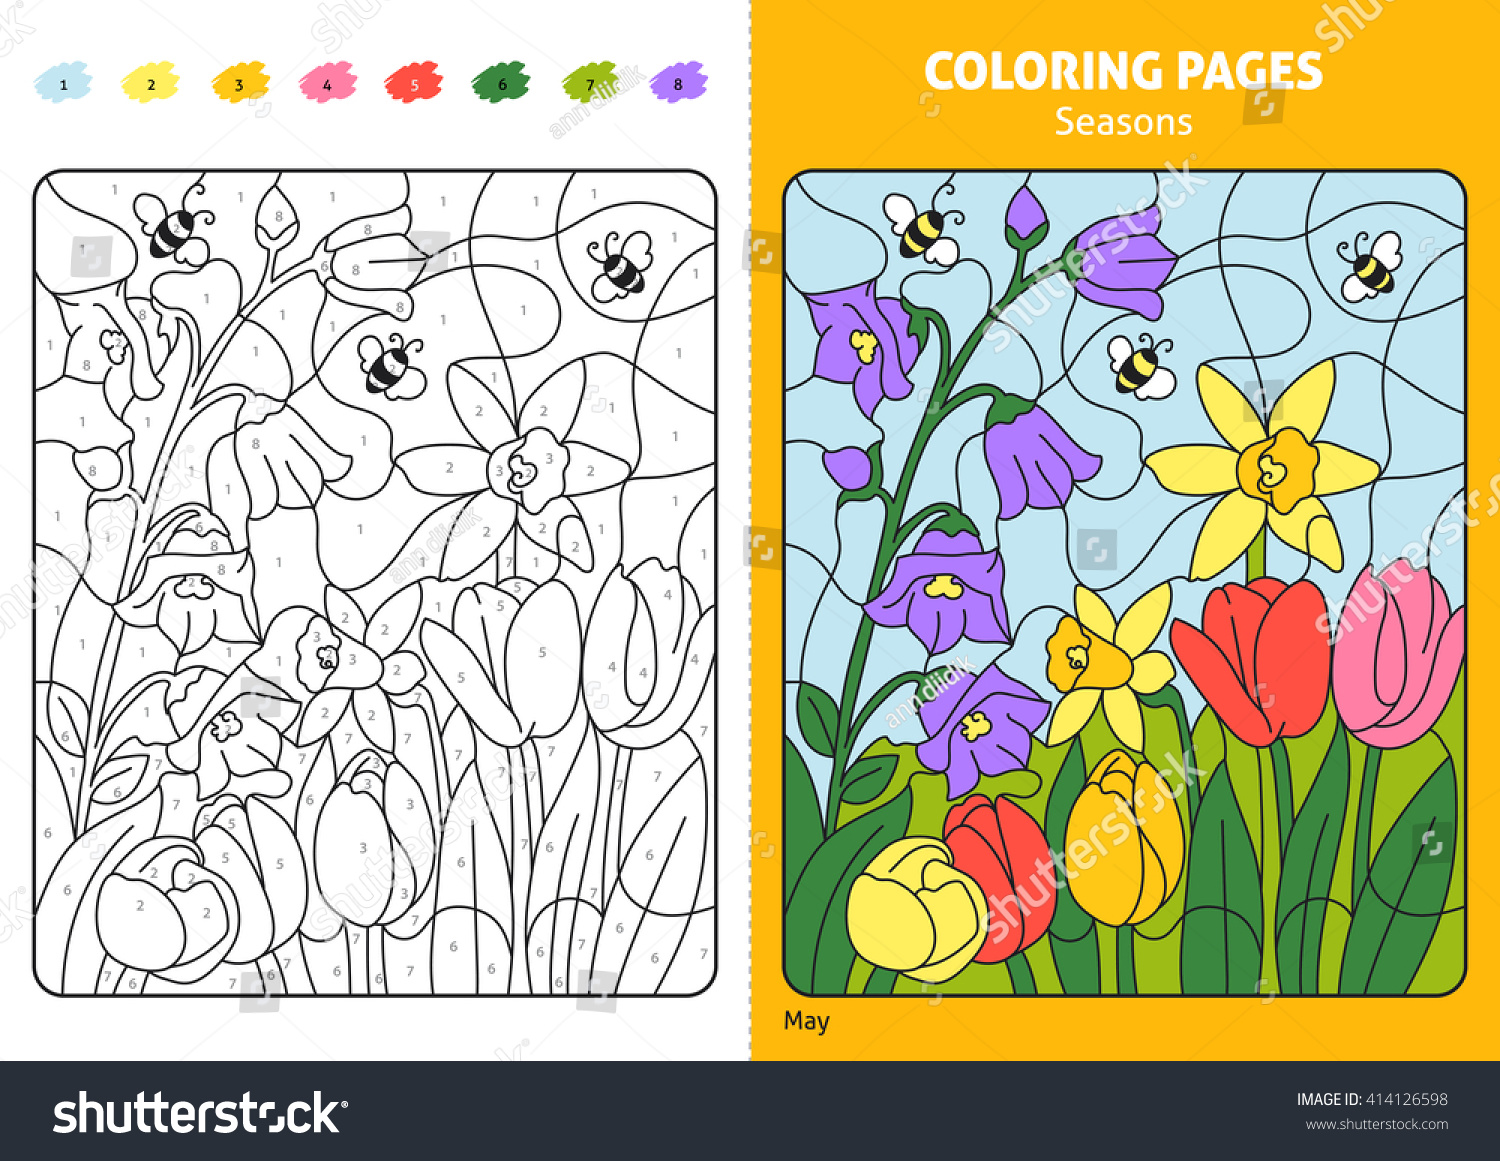 Seasons Coloring Page For Kids May MonthPrintable Design Book Puzzle